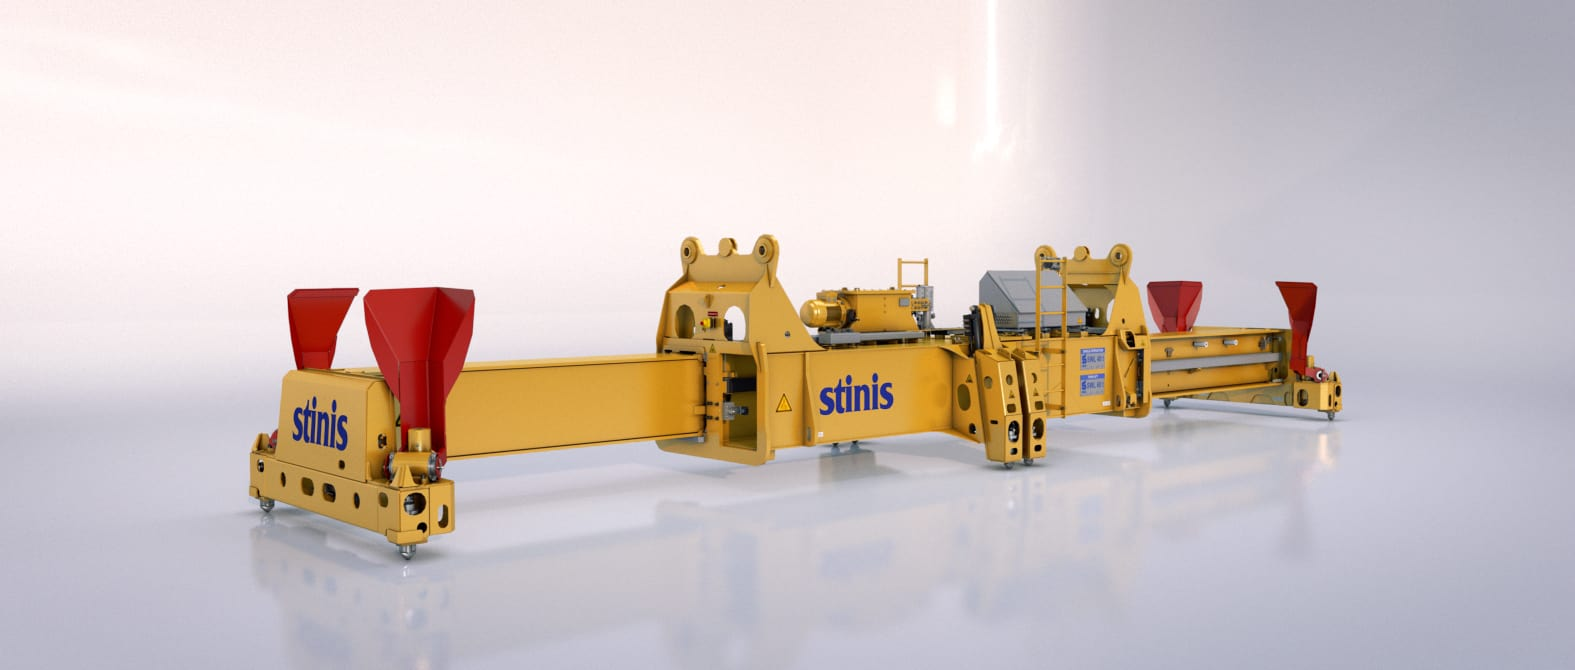 Twin Lift Ship to Shore Crane Spreaders Stinis